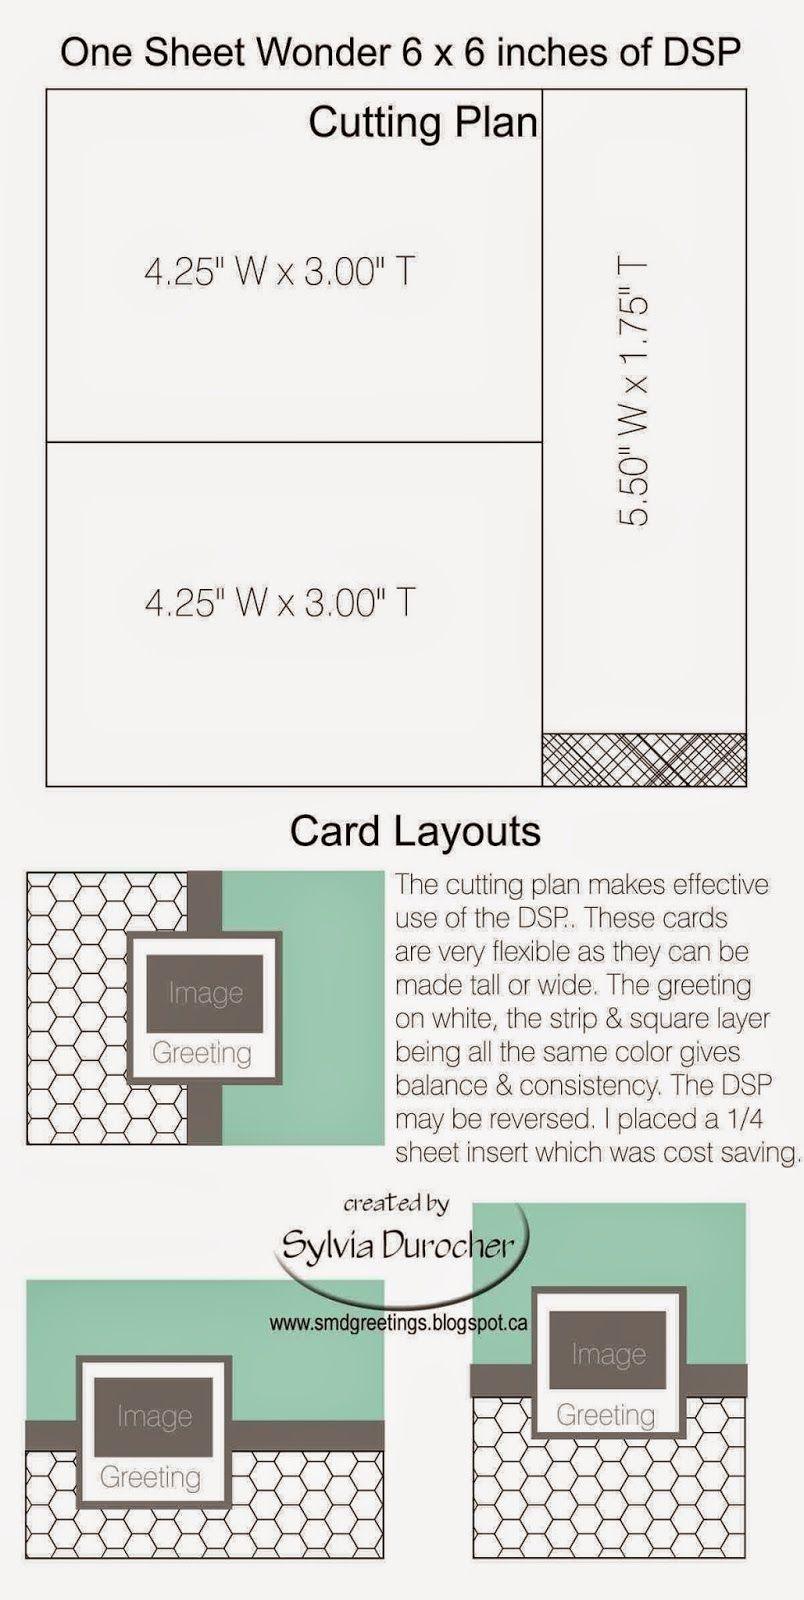 I did research a while ago for One Sheet Wonder plans. For me I had hoped to find the cutting plan and the card layouts to go with it....